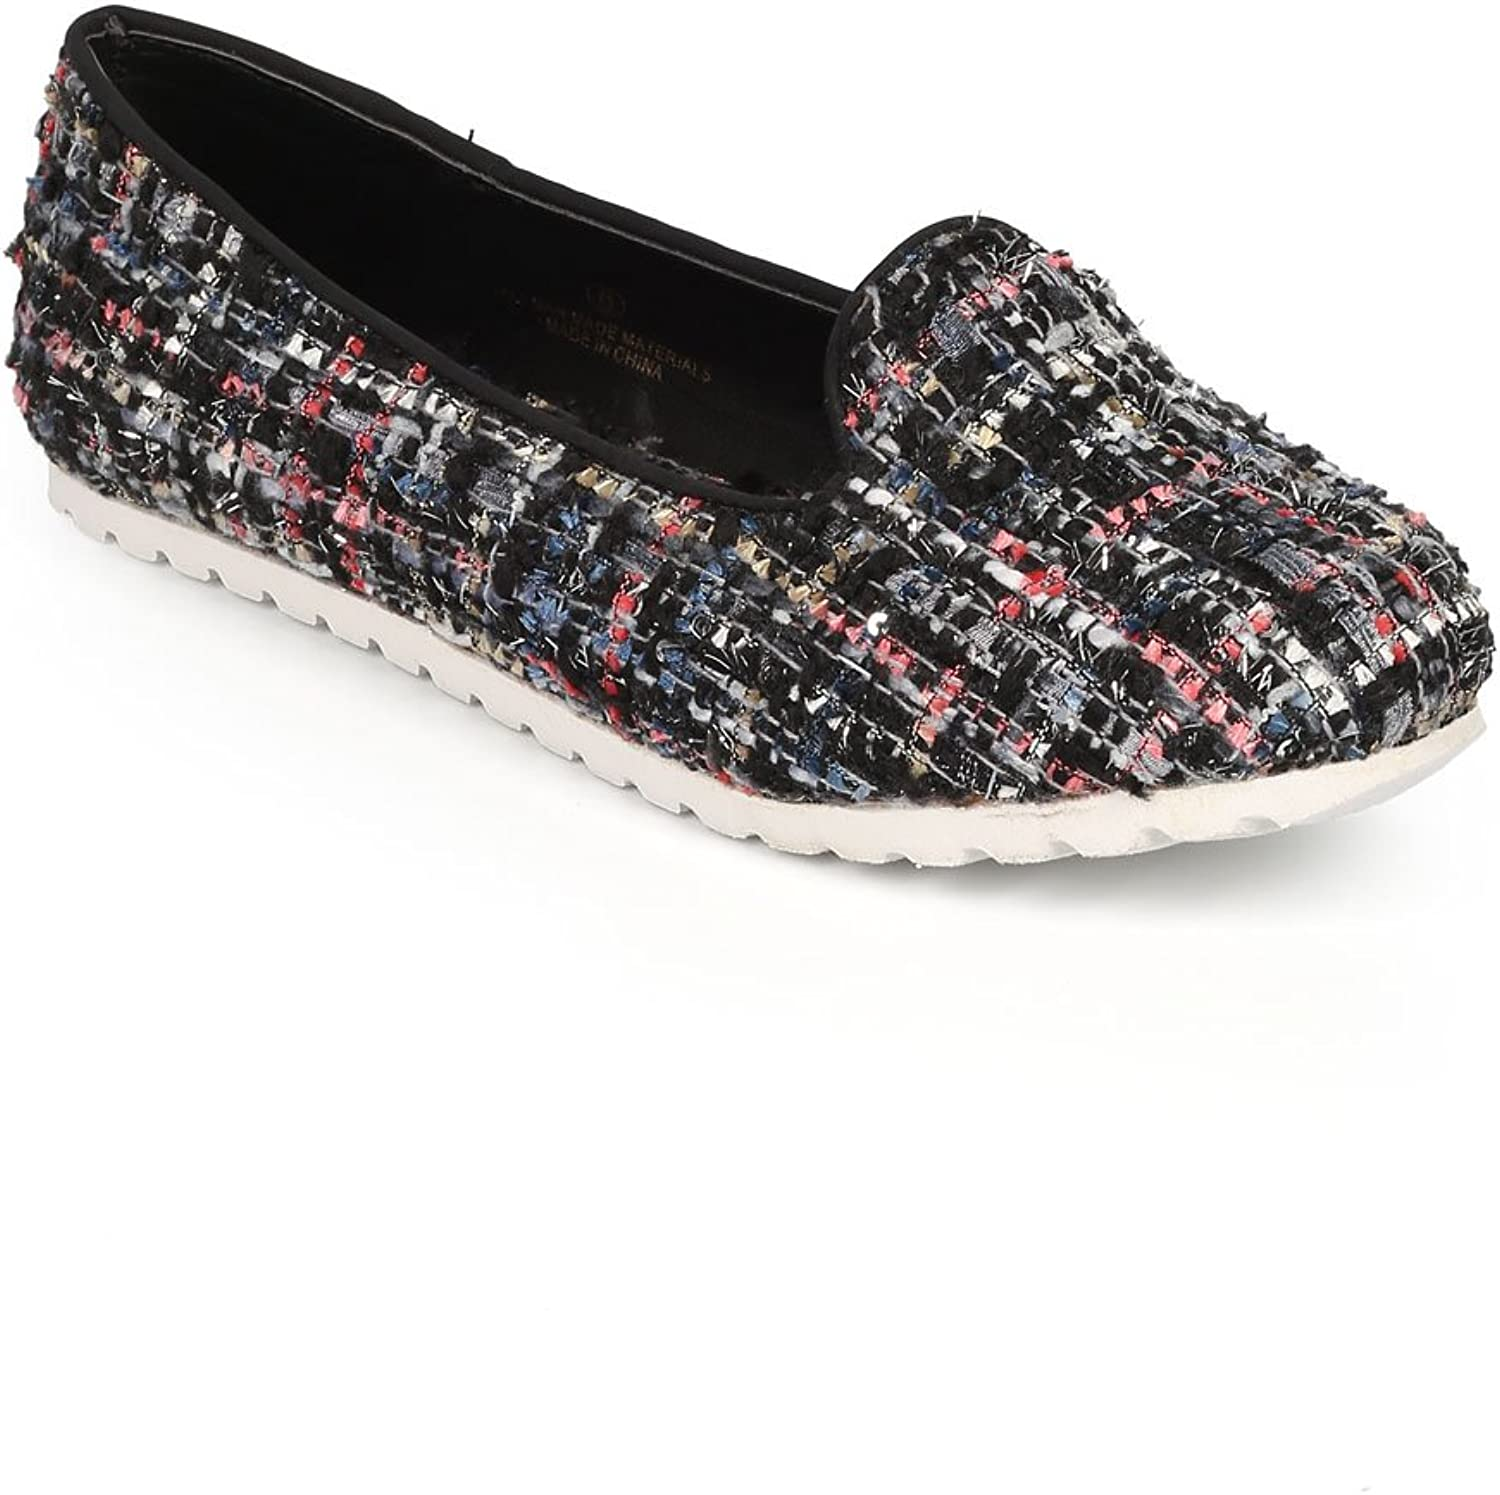 Misbehave Women Tweed Fabric Round Toe Slipper Loafer Flat CI40 - Black